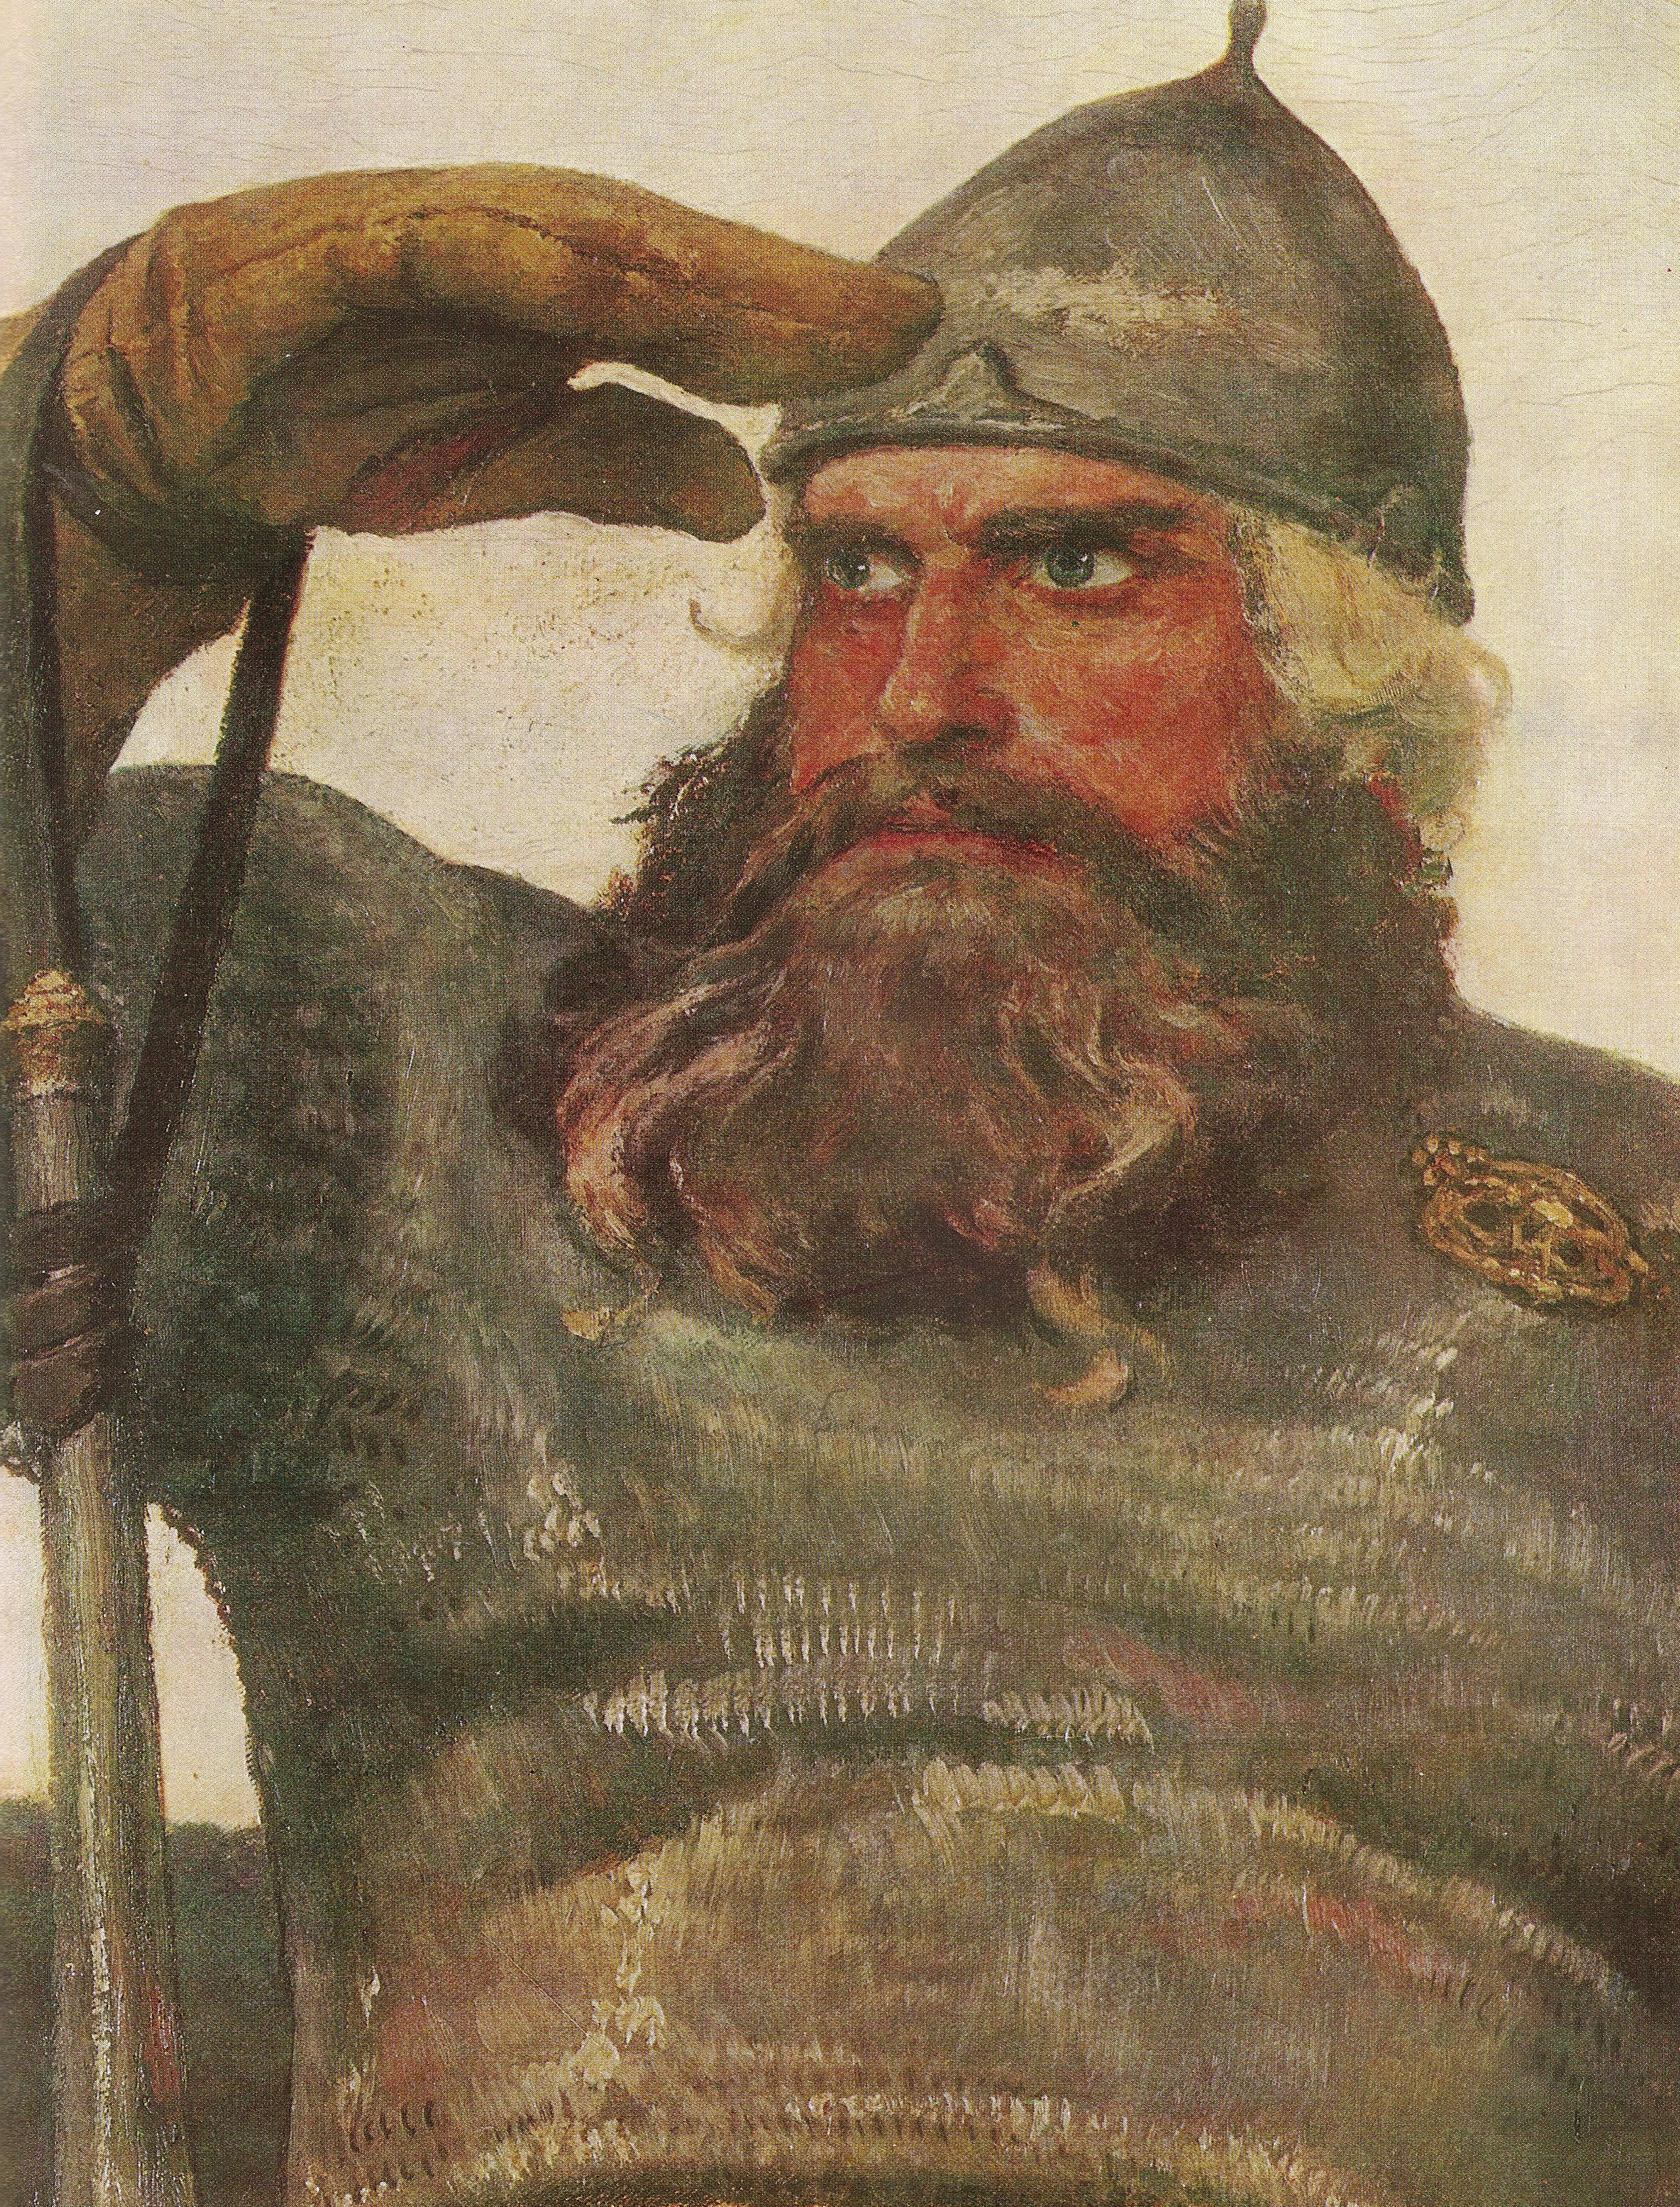 Things you may not know about Ilya Muromets